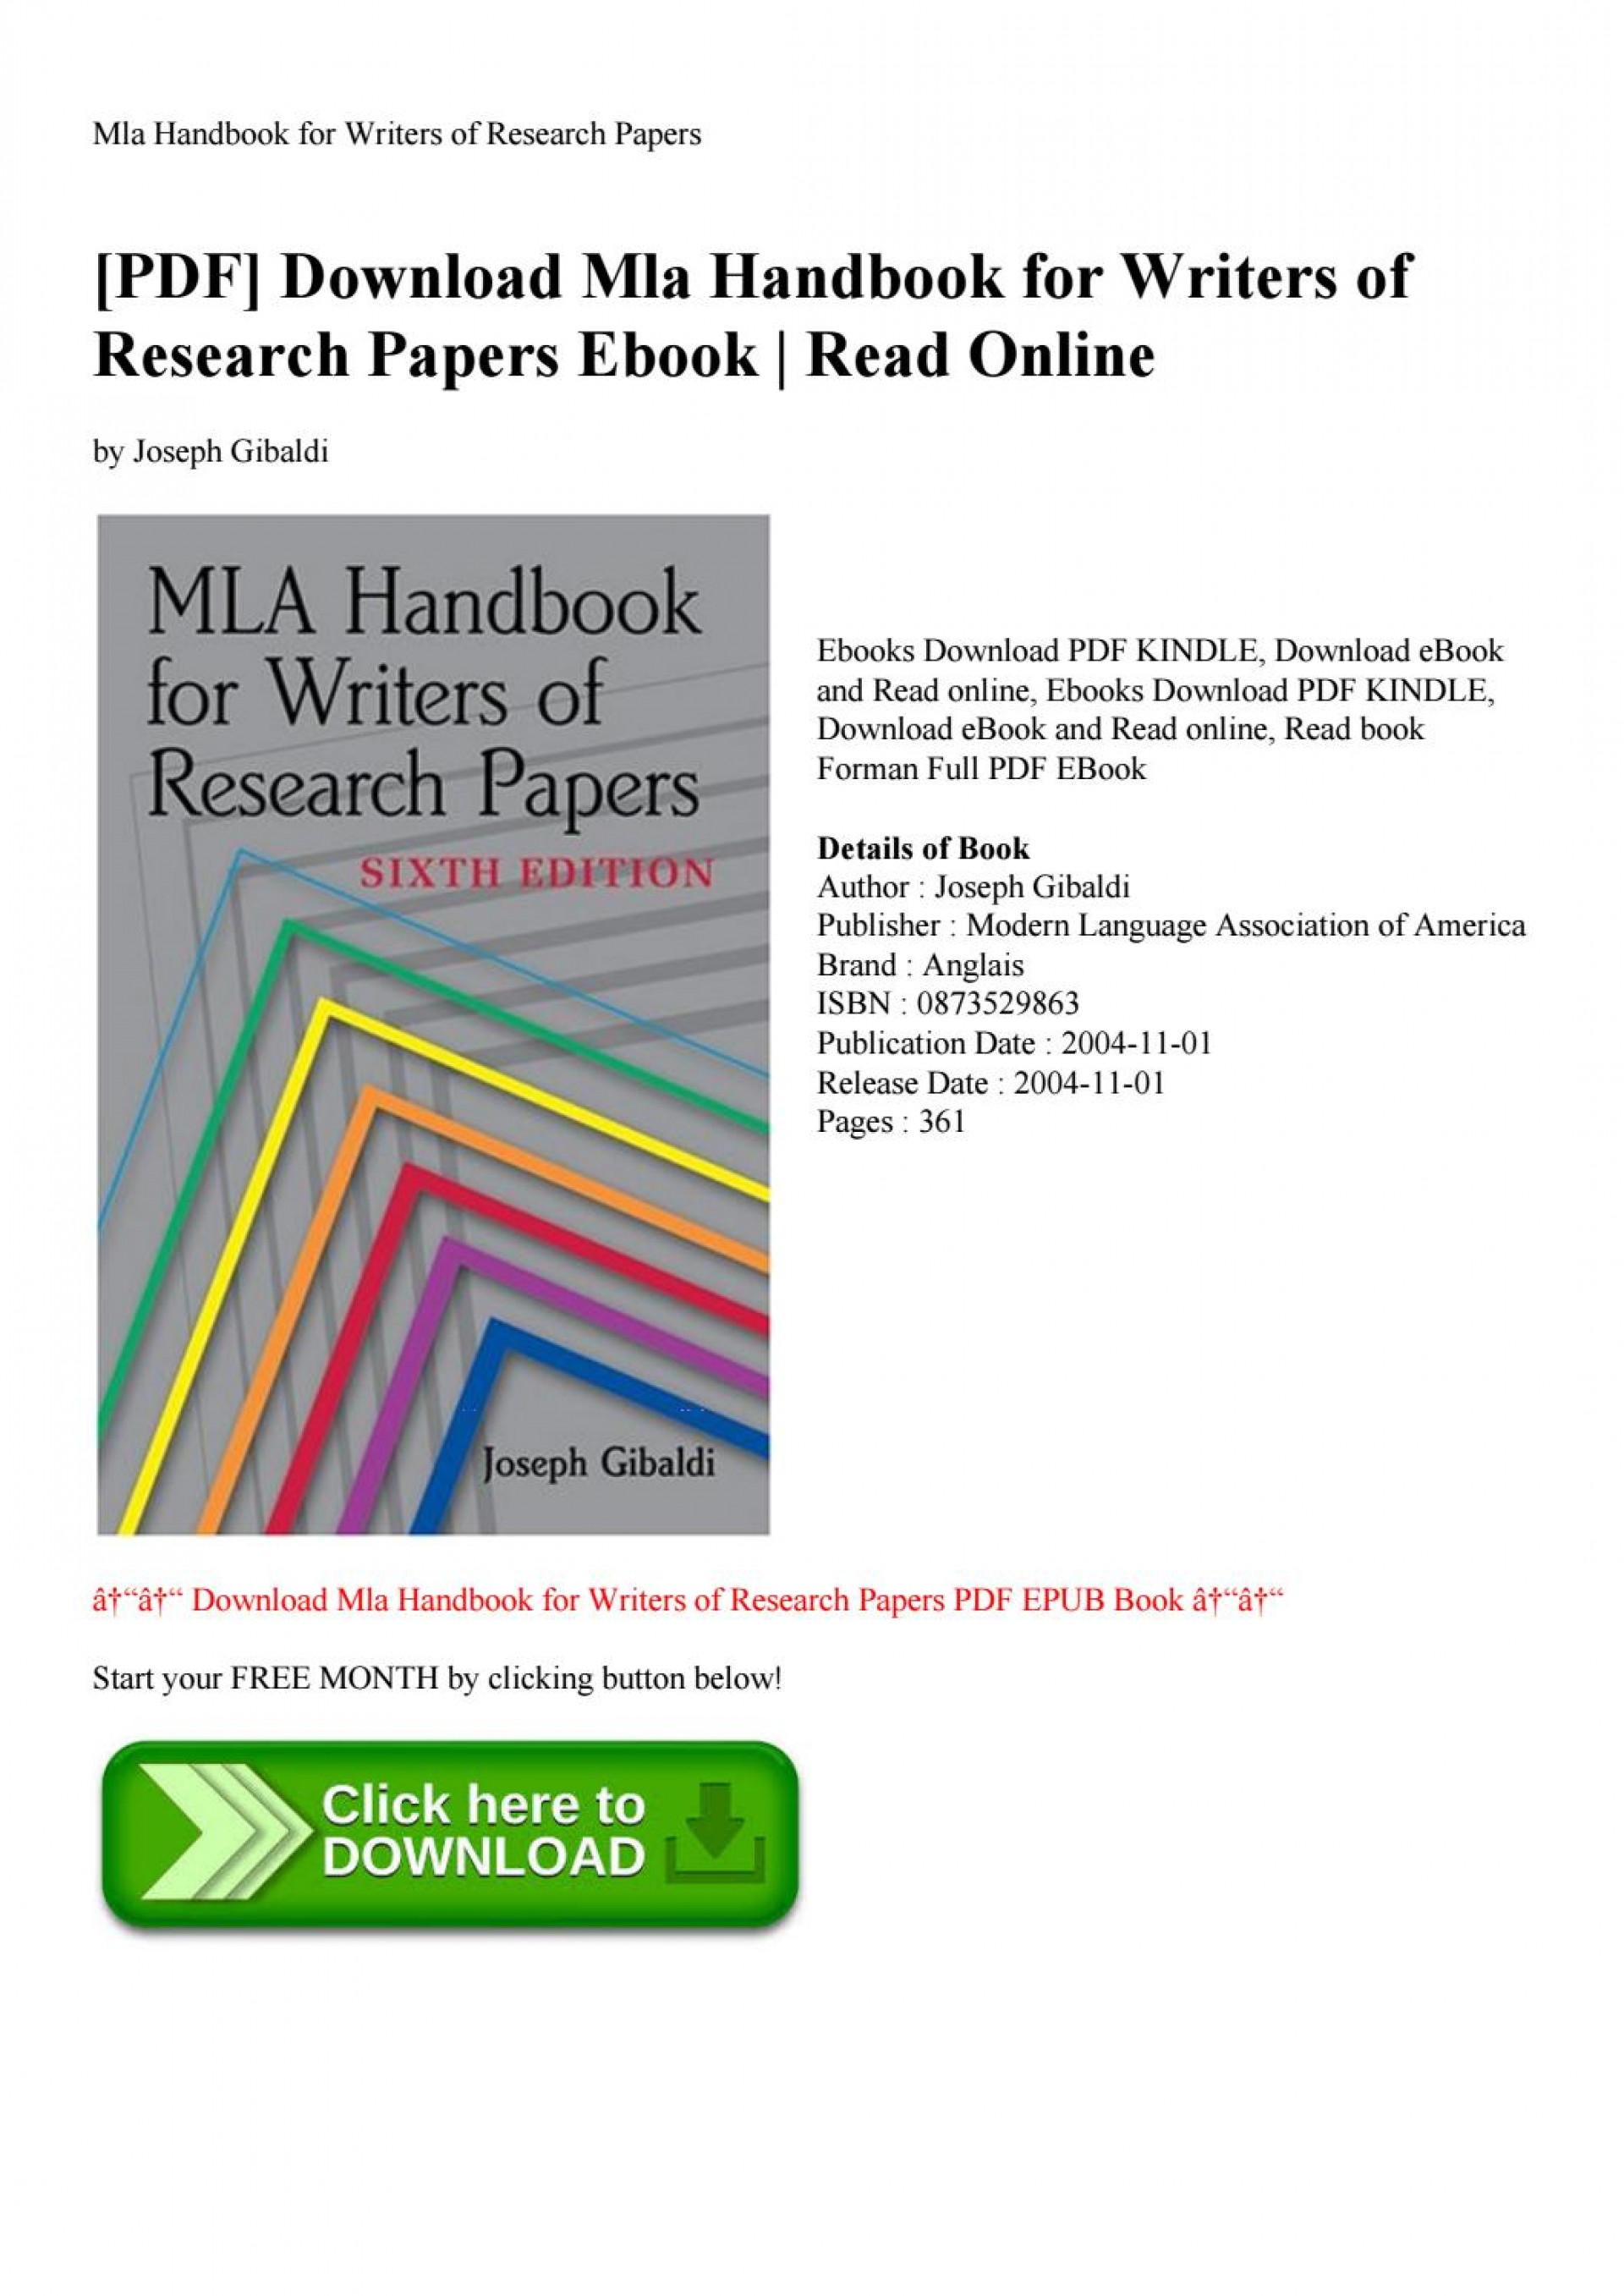 002 Research Paper Mla Handbook For Writers Of Papers Pdf Download Page 1 Top 8th Edition Free 1920